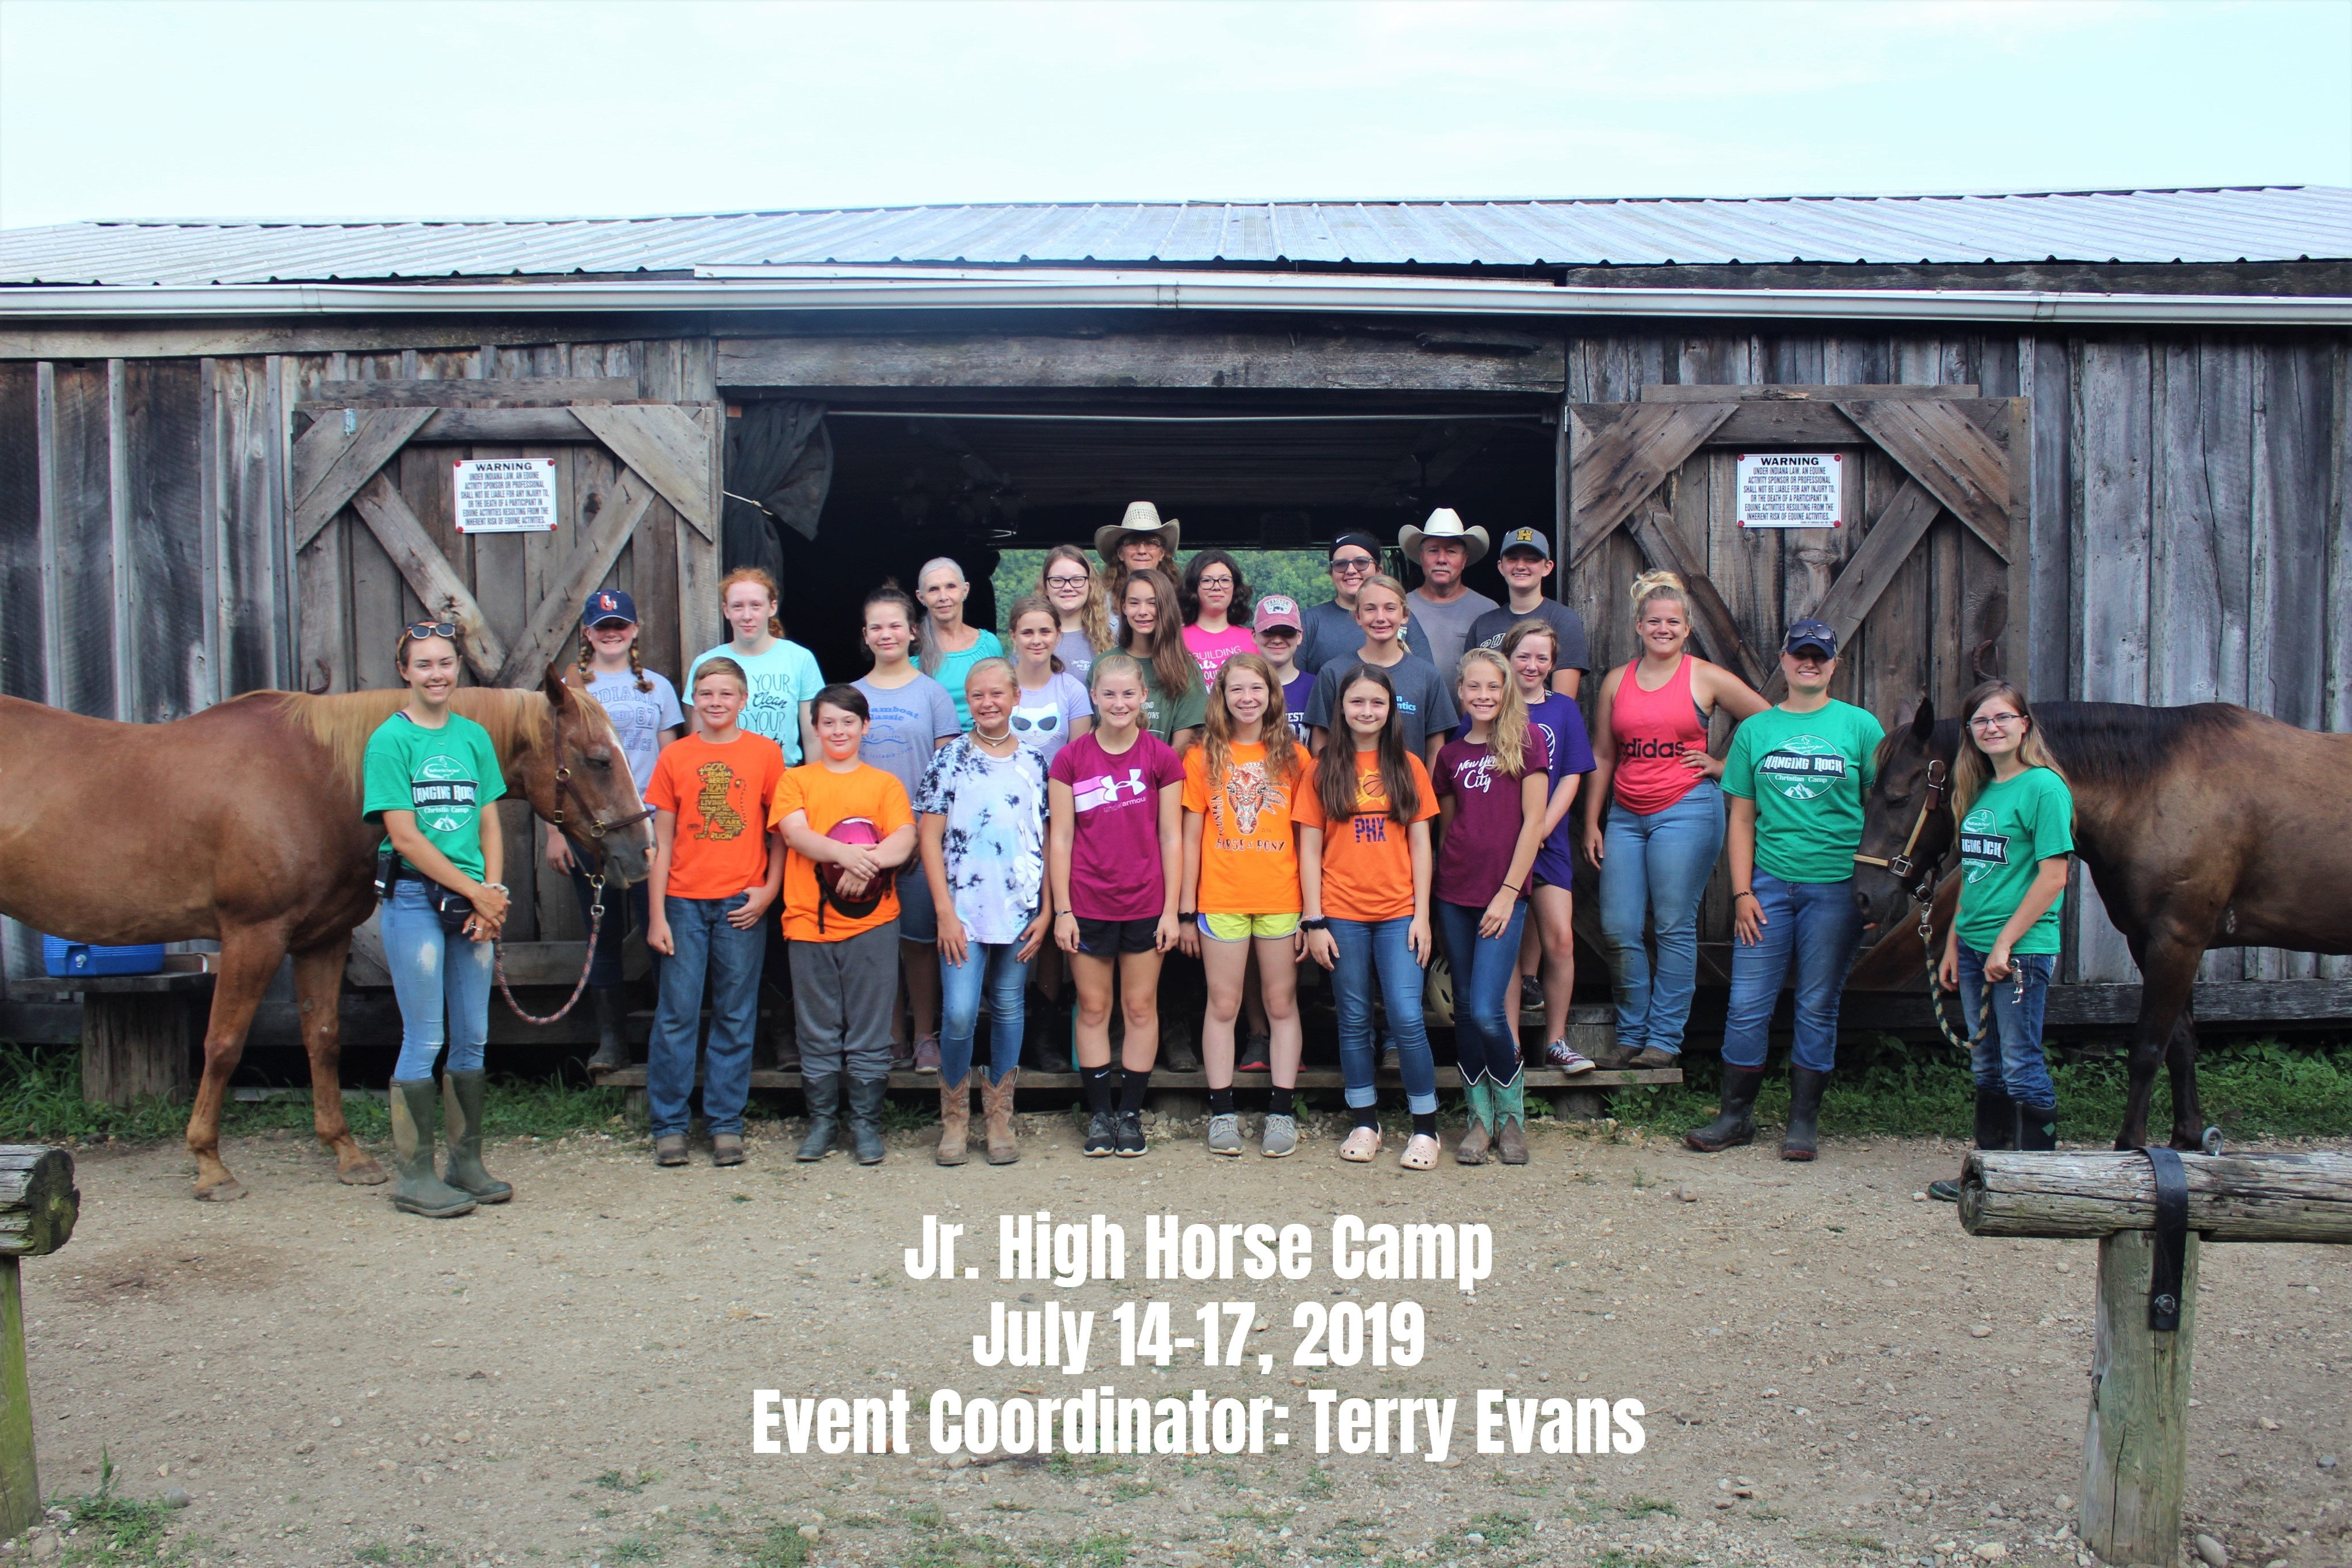 Jr. High Horse Camp